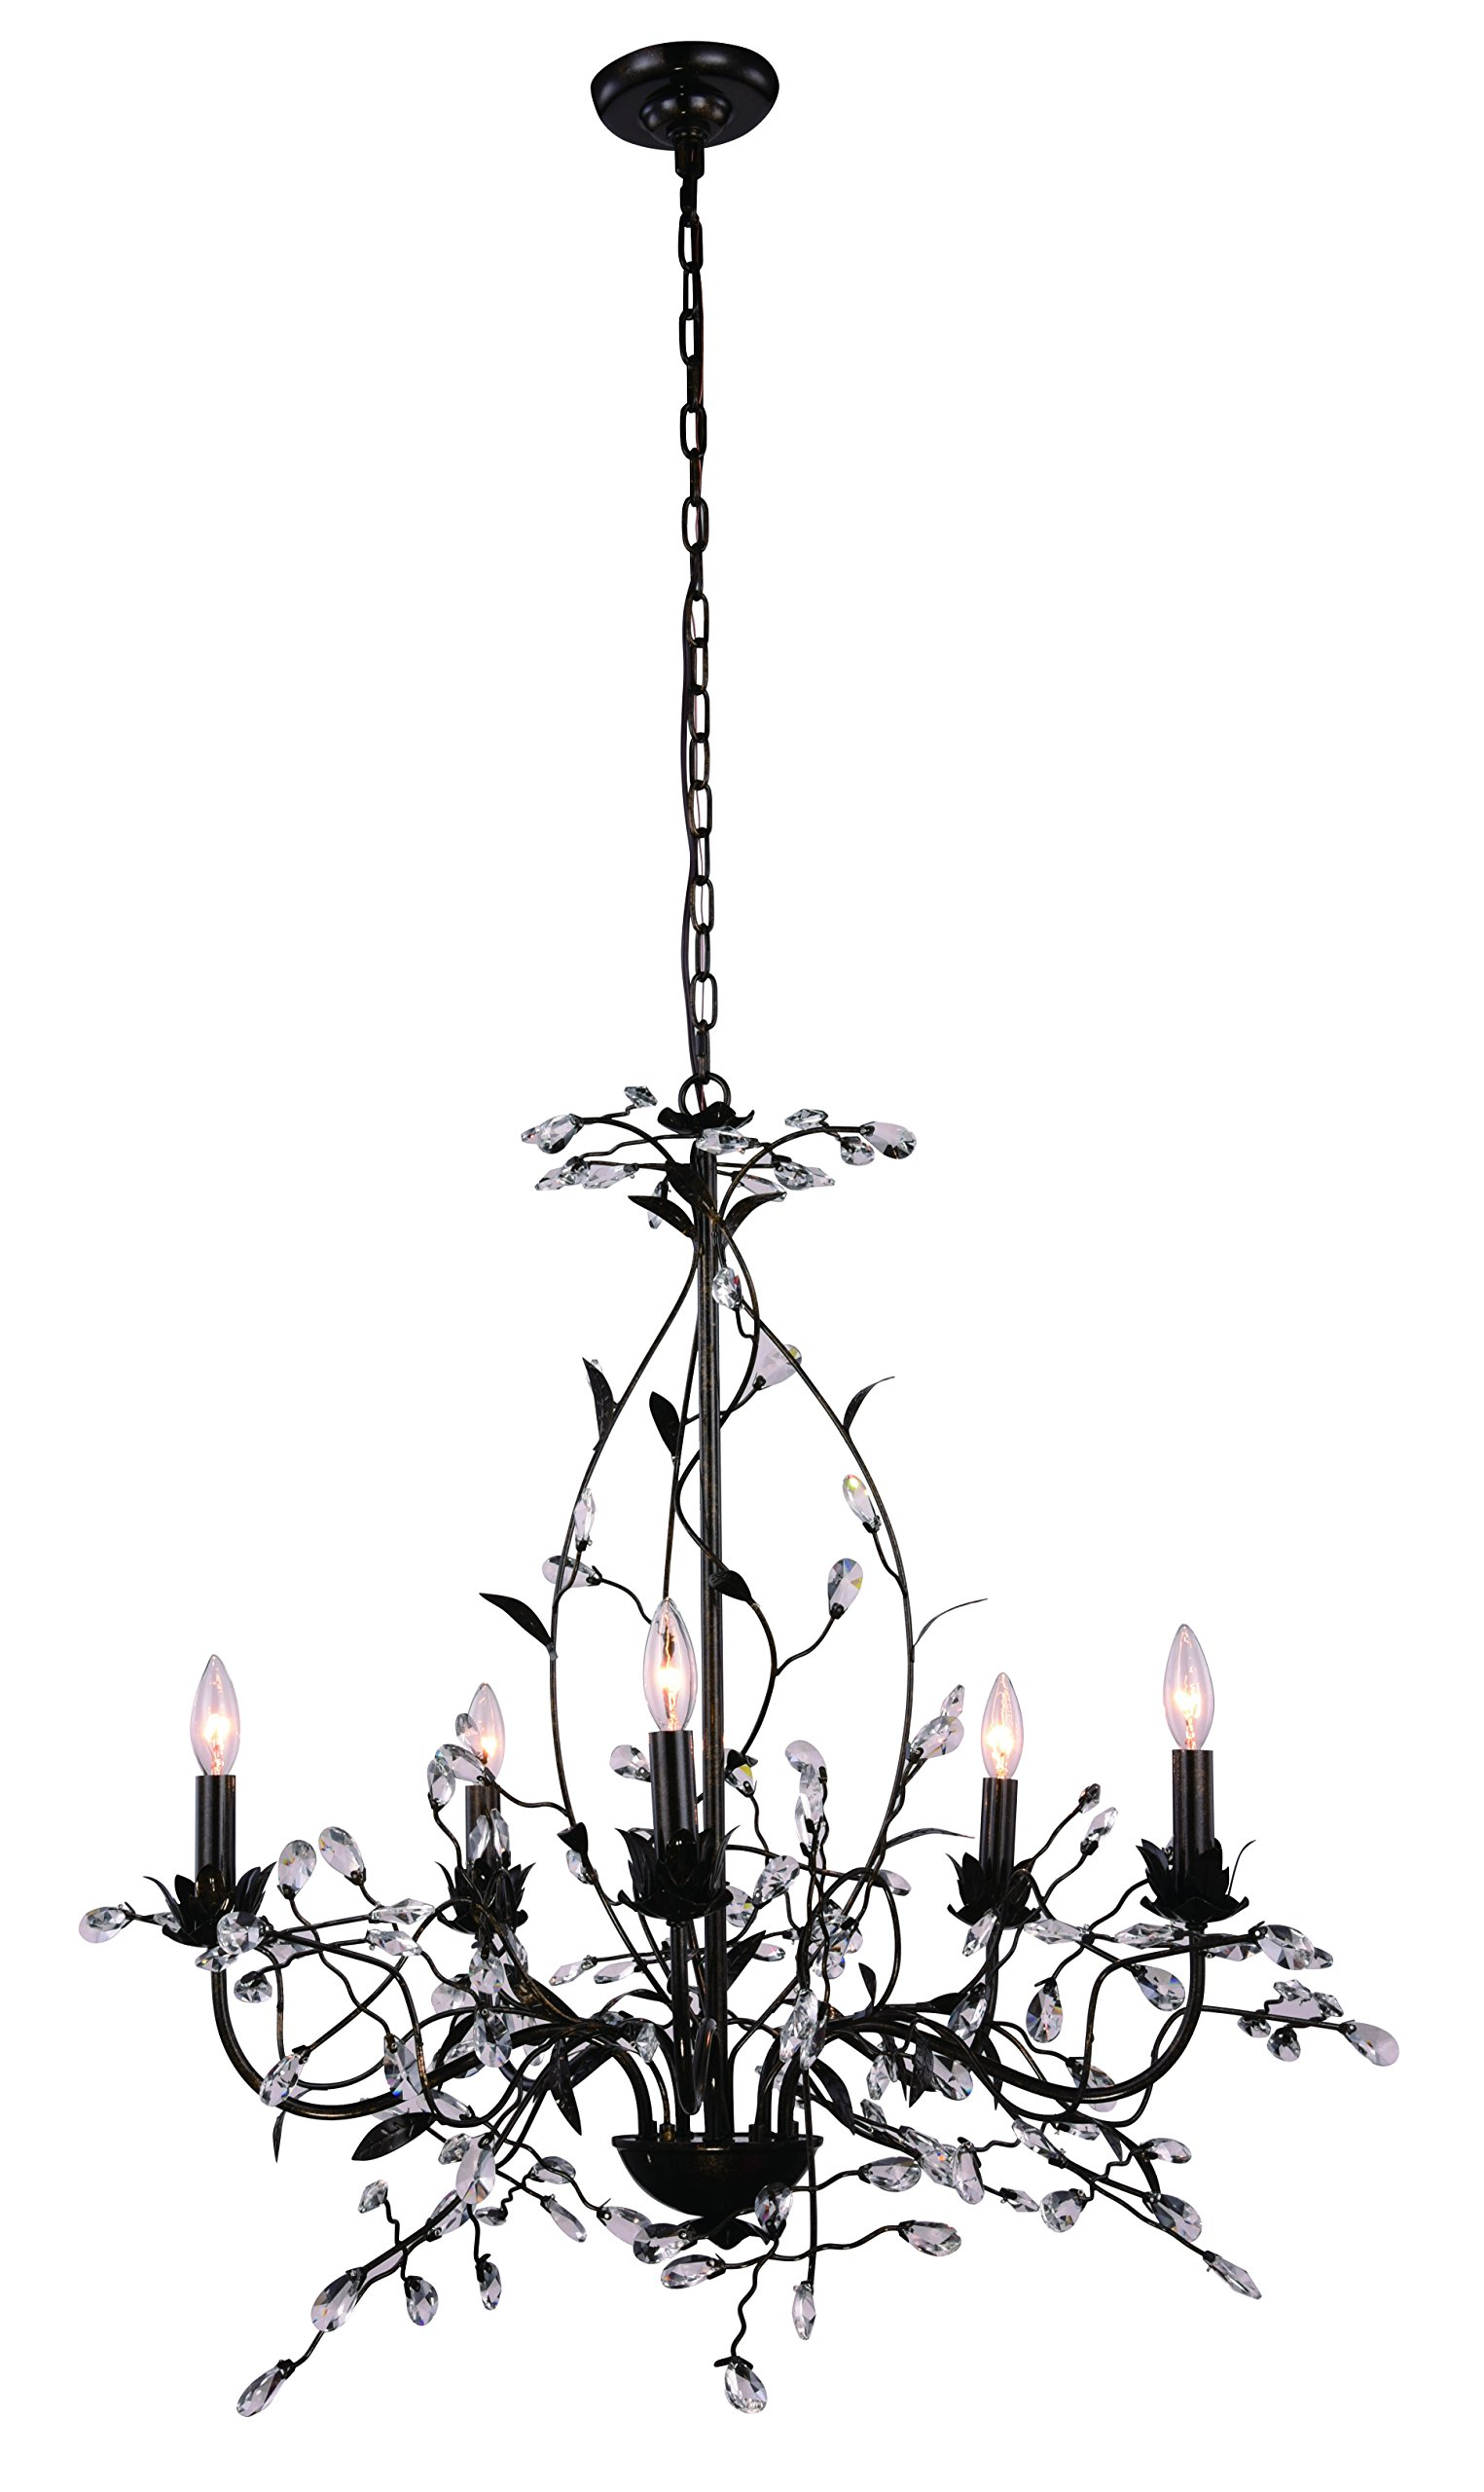 Arbor Collection Pendant Lamp D:35In. H:30In. Lt:5 Golden Dark Bronze Finish by Urban Classic (Image #1)